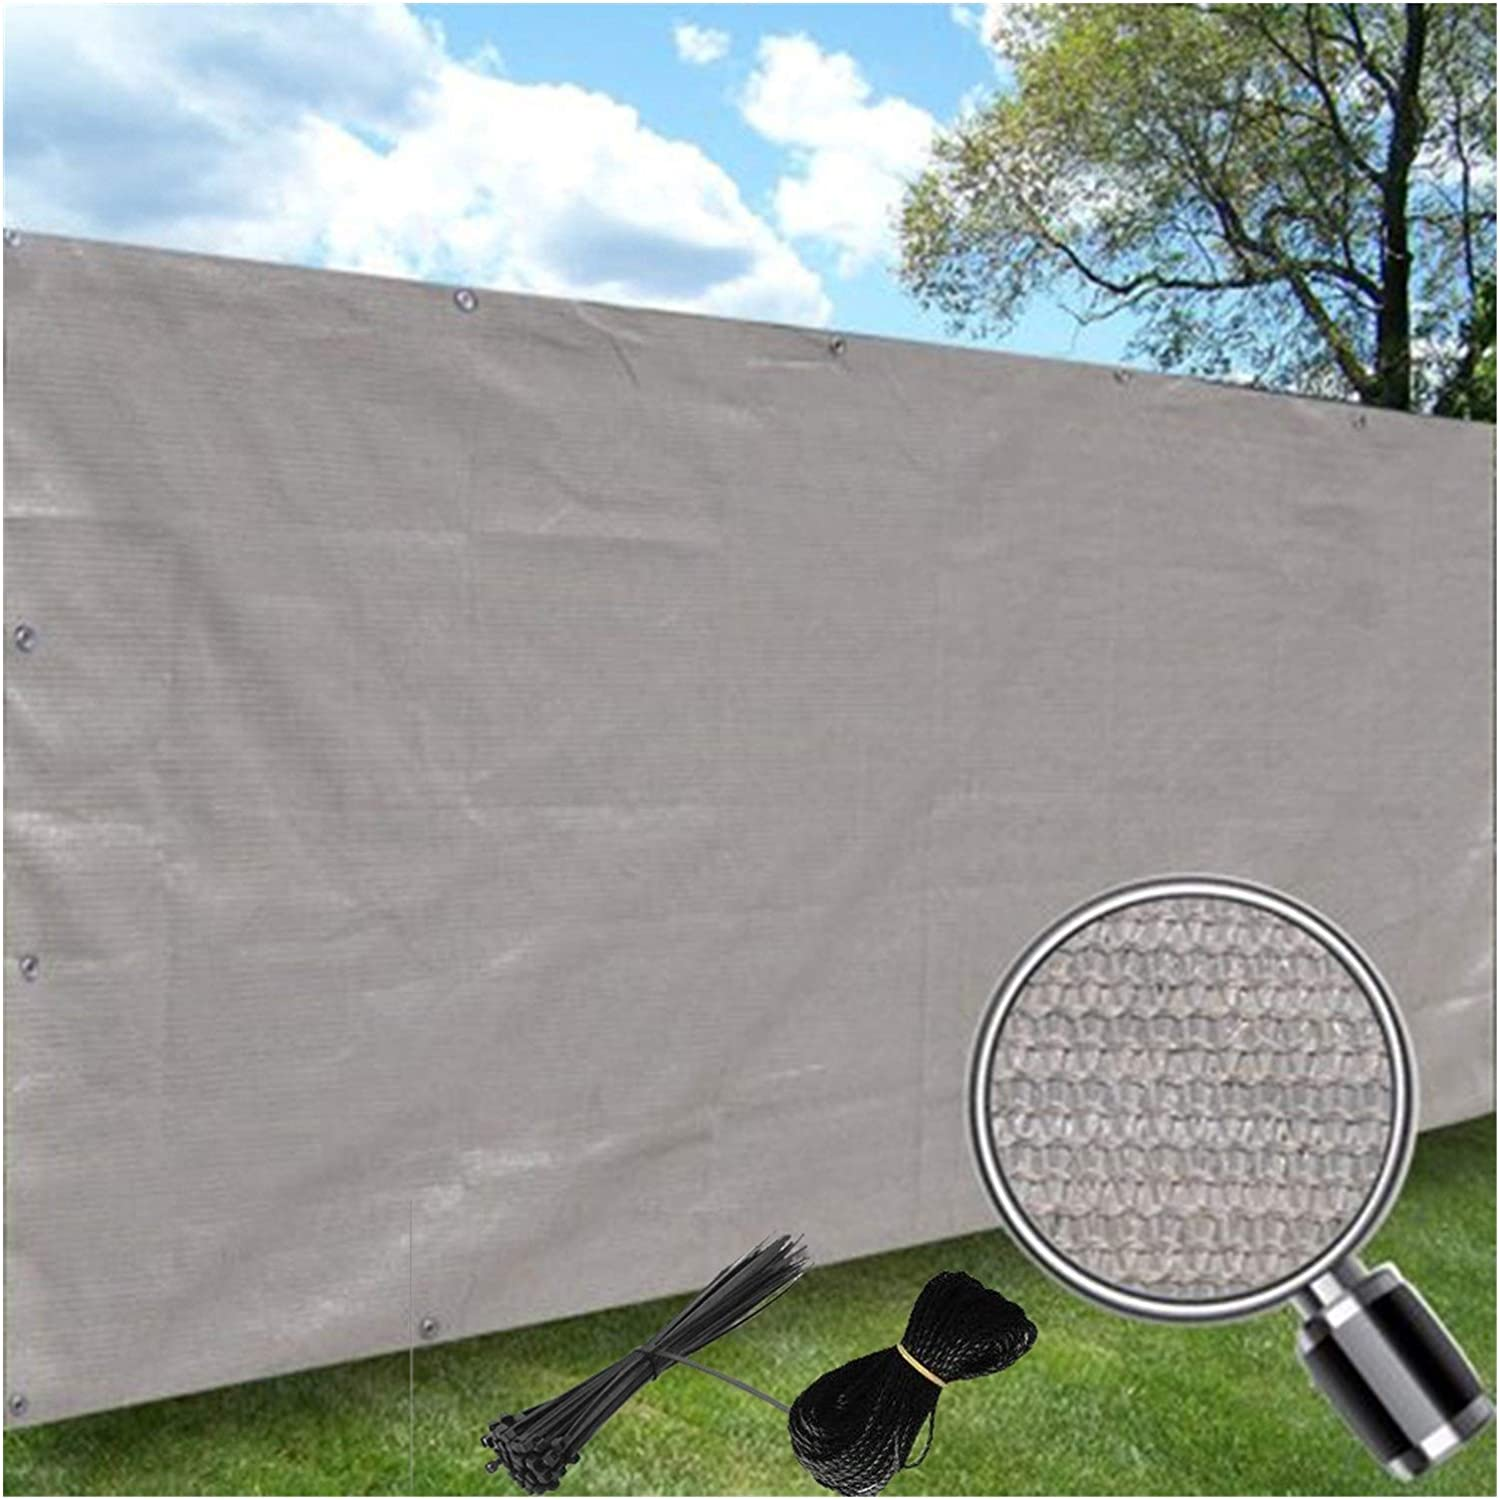 LSXIAO Outdoor Backyard Fence Mesh Popular shop is the lowest price challenge Wind Screen Privacy Balcony OFFicial store